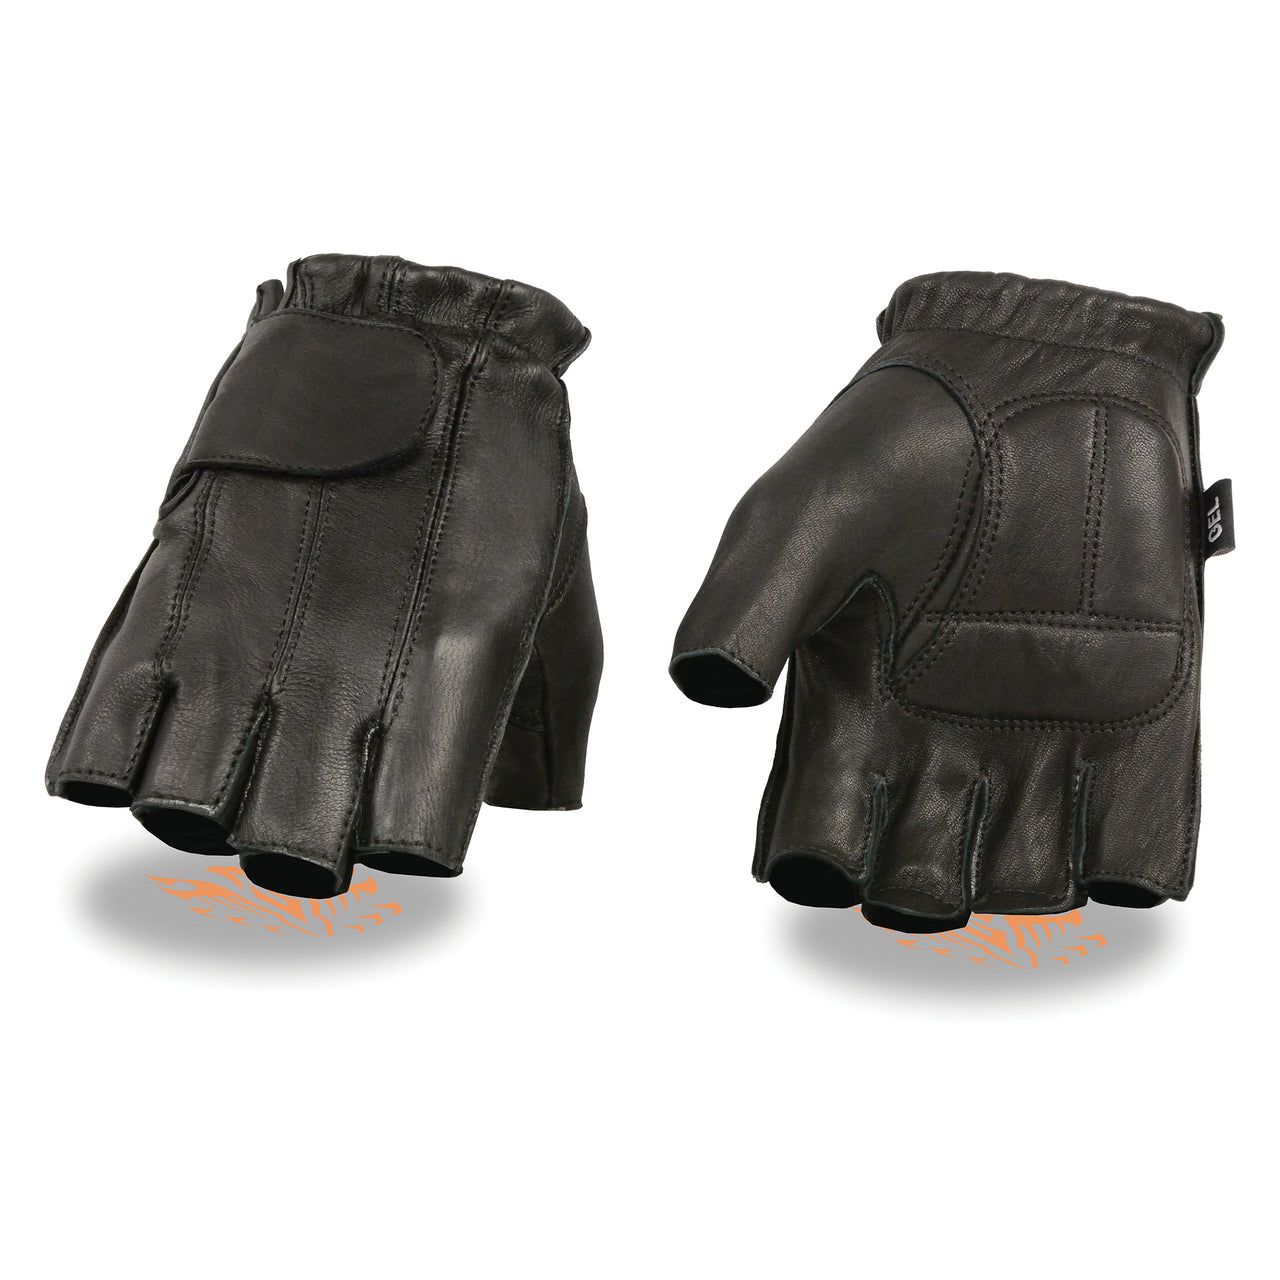 Men's Deerskin Full Panel Fingerless Gloves w/ Gel Palm - HighwayLeather